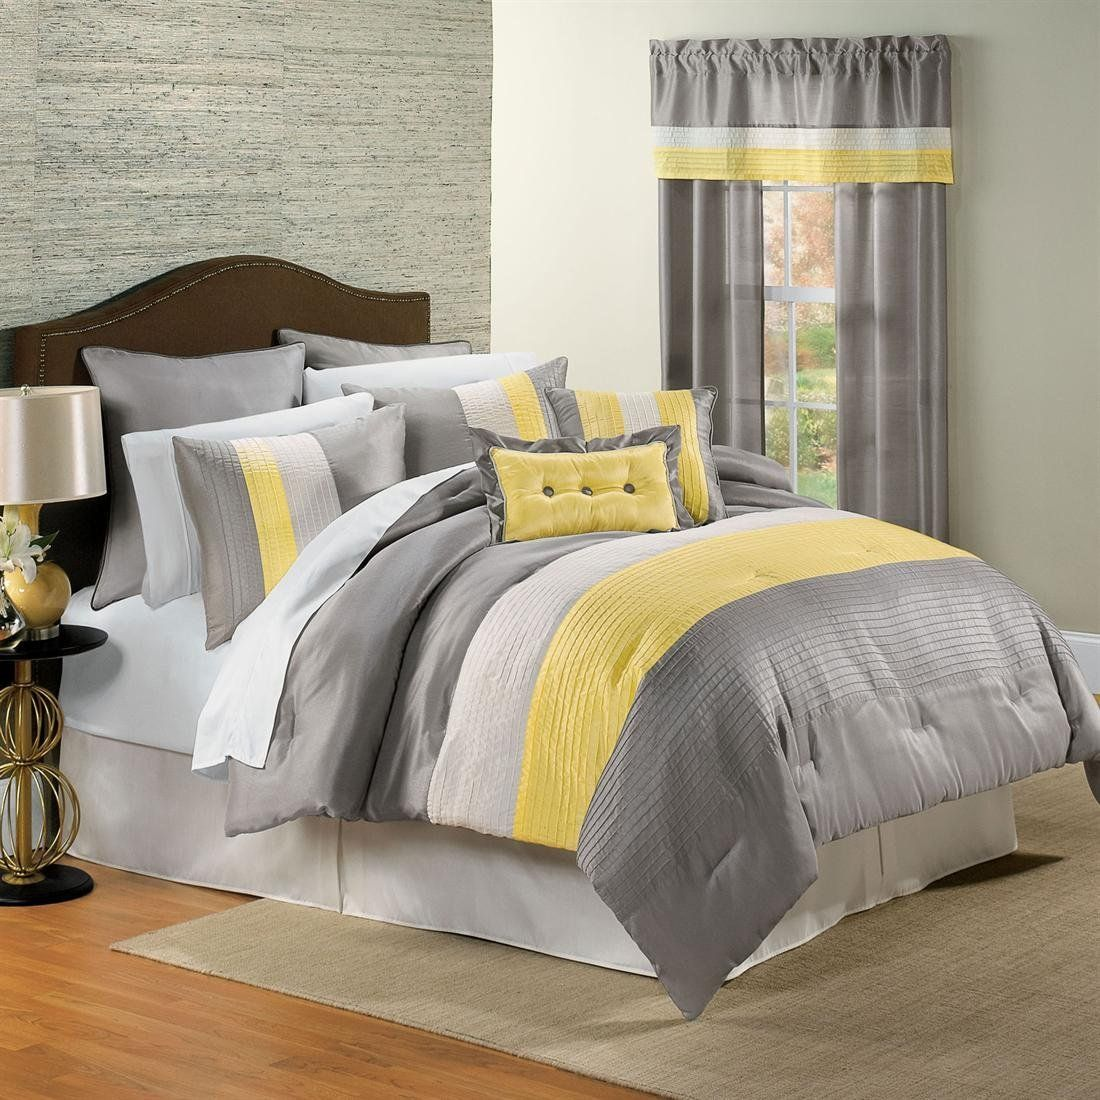 Yellow White Grey And Black Bedding I Love This Color Scheme Inspiration For Redecorating